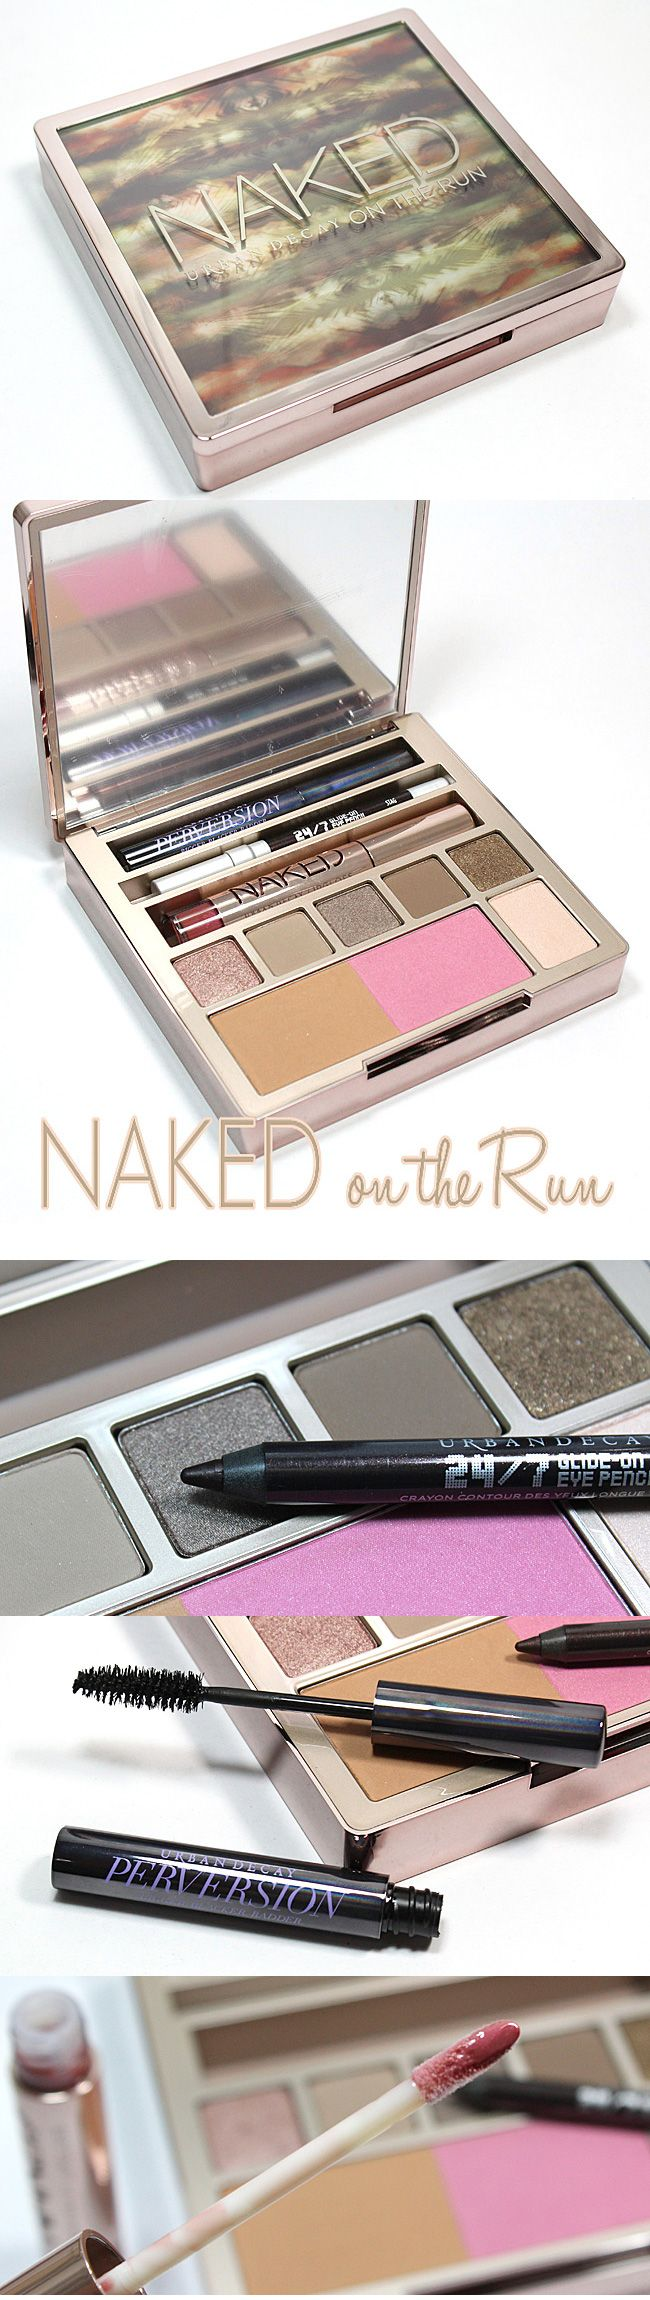 The ultimate portable palette for us NAKED loving #makeup girls: Urban Decay Naked on the Run palette